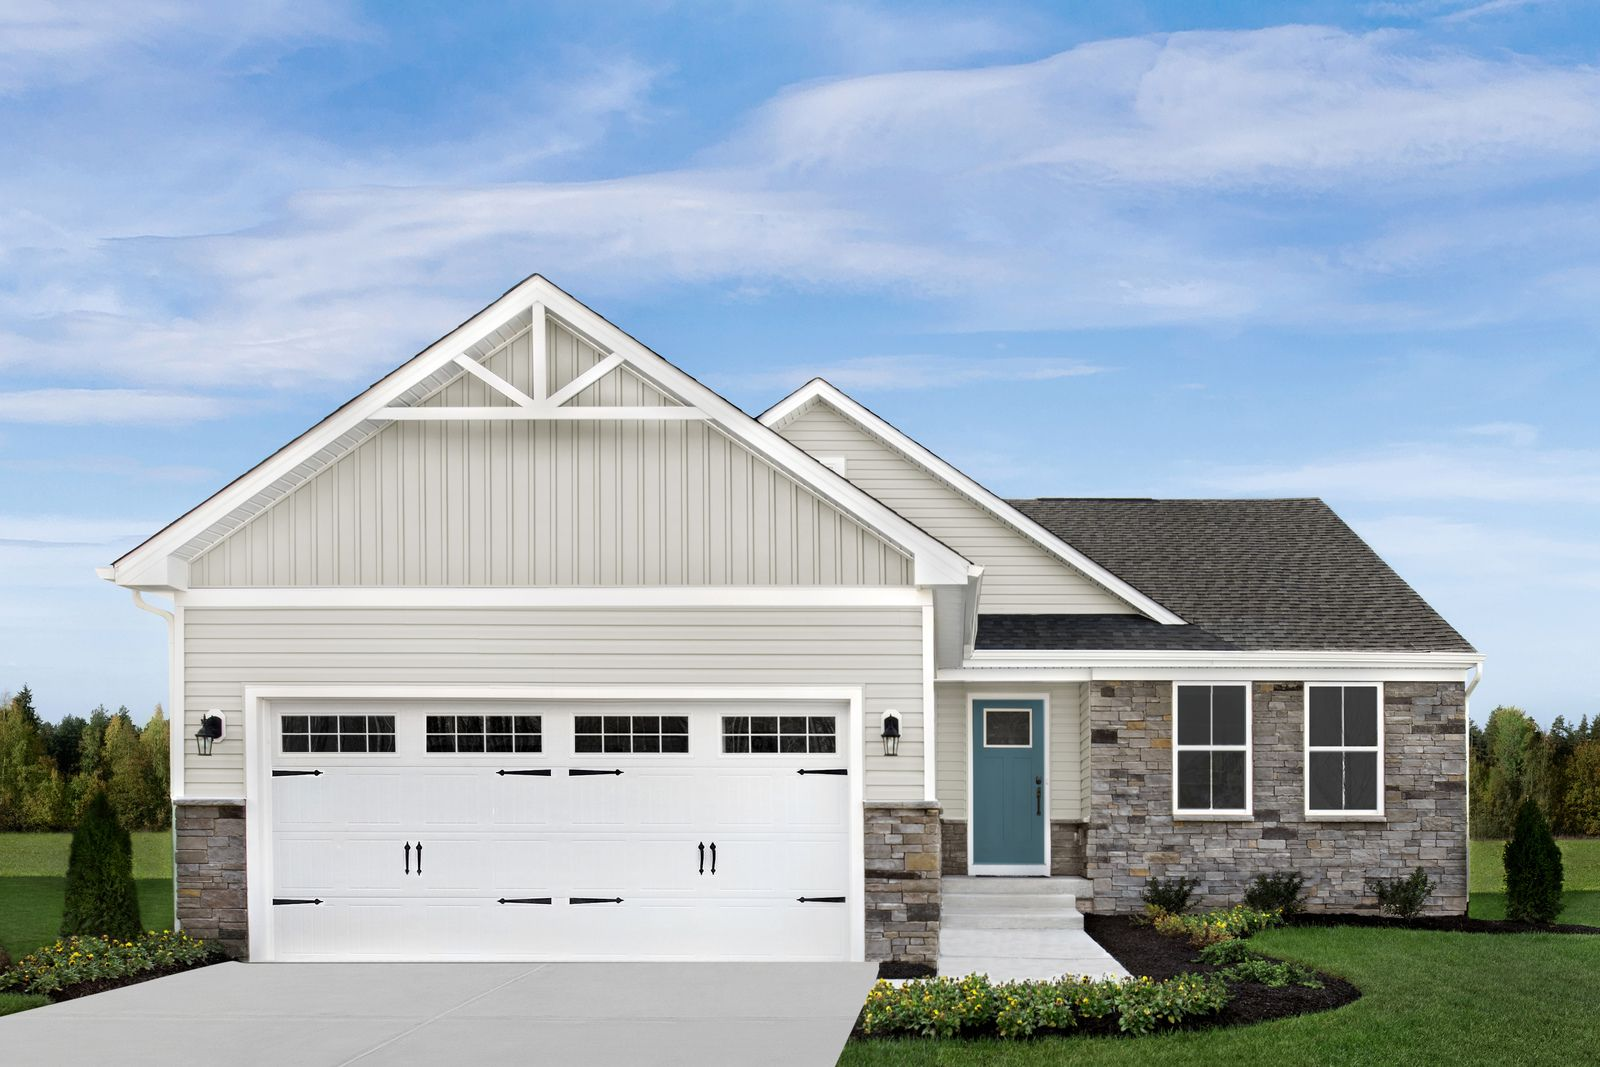 Low Maintenance Ranch Homes Coming to Greenfield Late 2021, Upper $200s:Finally, maintenance free detached ranch homesw/ lawn care & snow removal in Greenfield.Join the VIP list to receive community news& floorplan details in your inbox & even first chance to purchase.